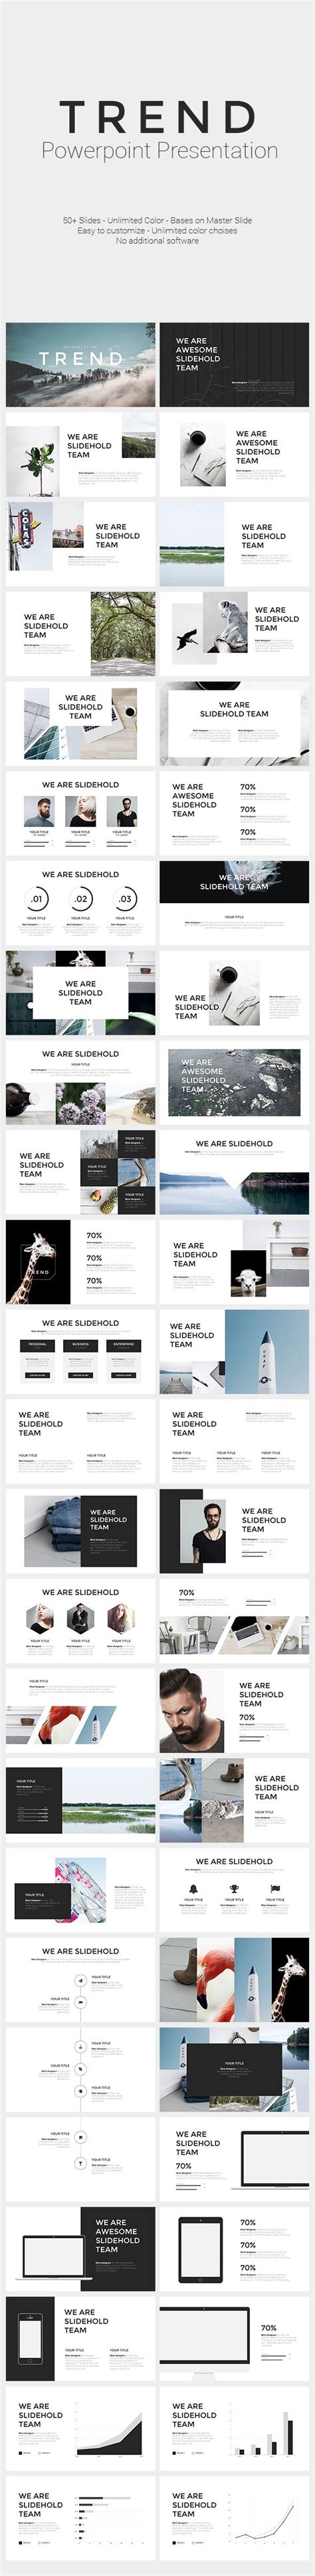 download layout for ppt best 25 slide design ideas on pinterest presentation